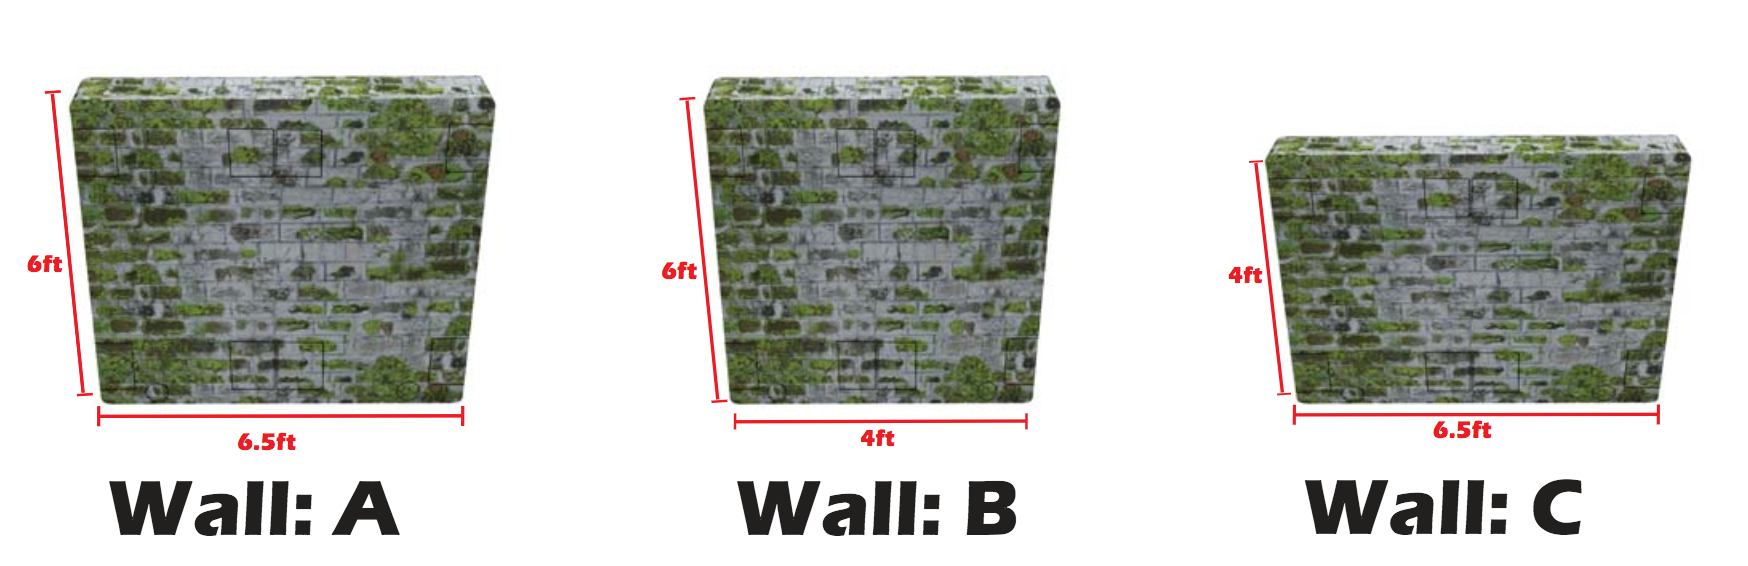 Tactical Bunkers for Paintball WALLS ABC Scenario